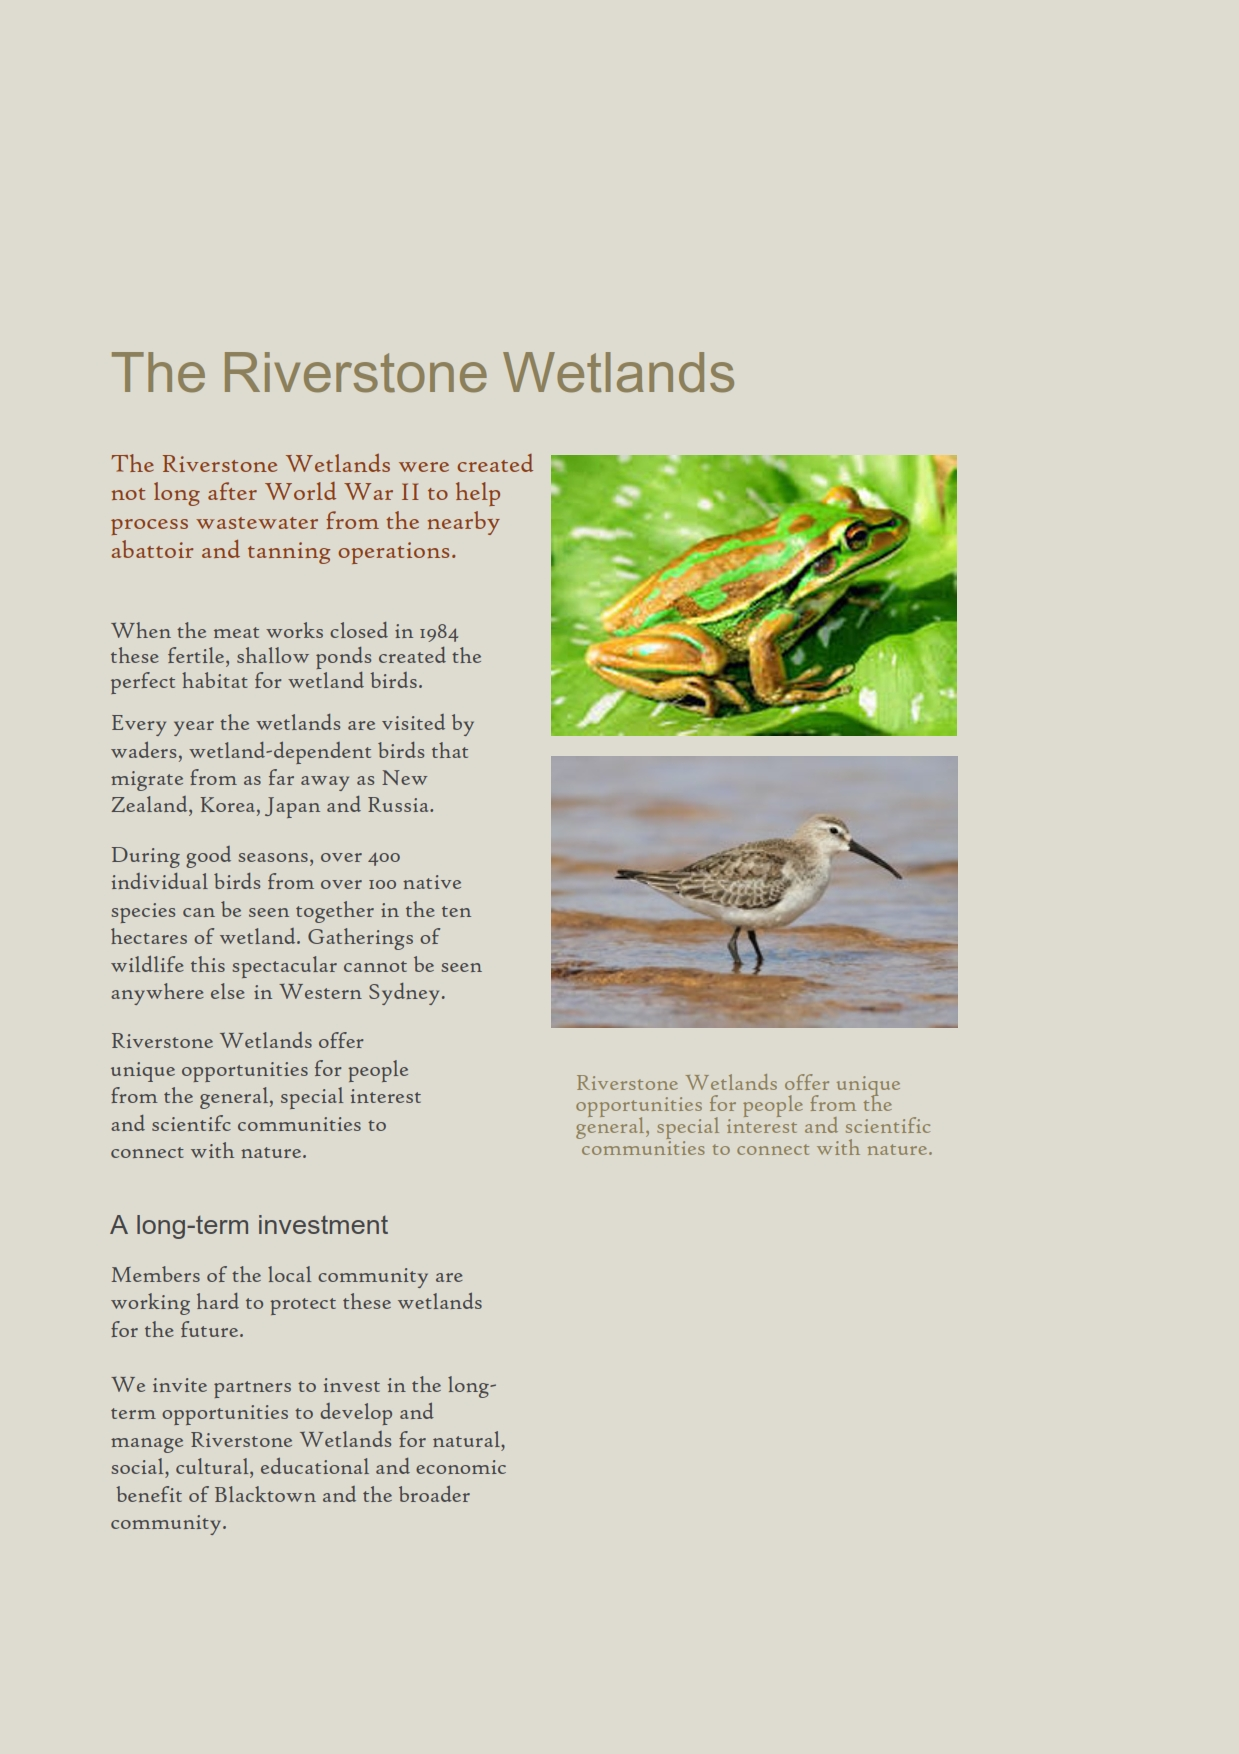 Save Riverstone Wetlands_002